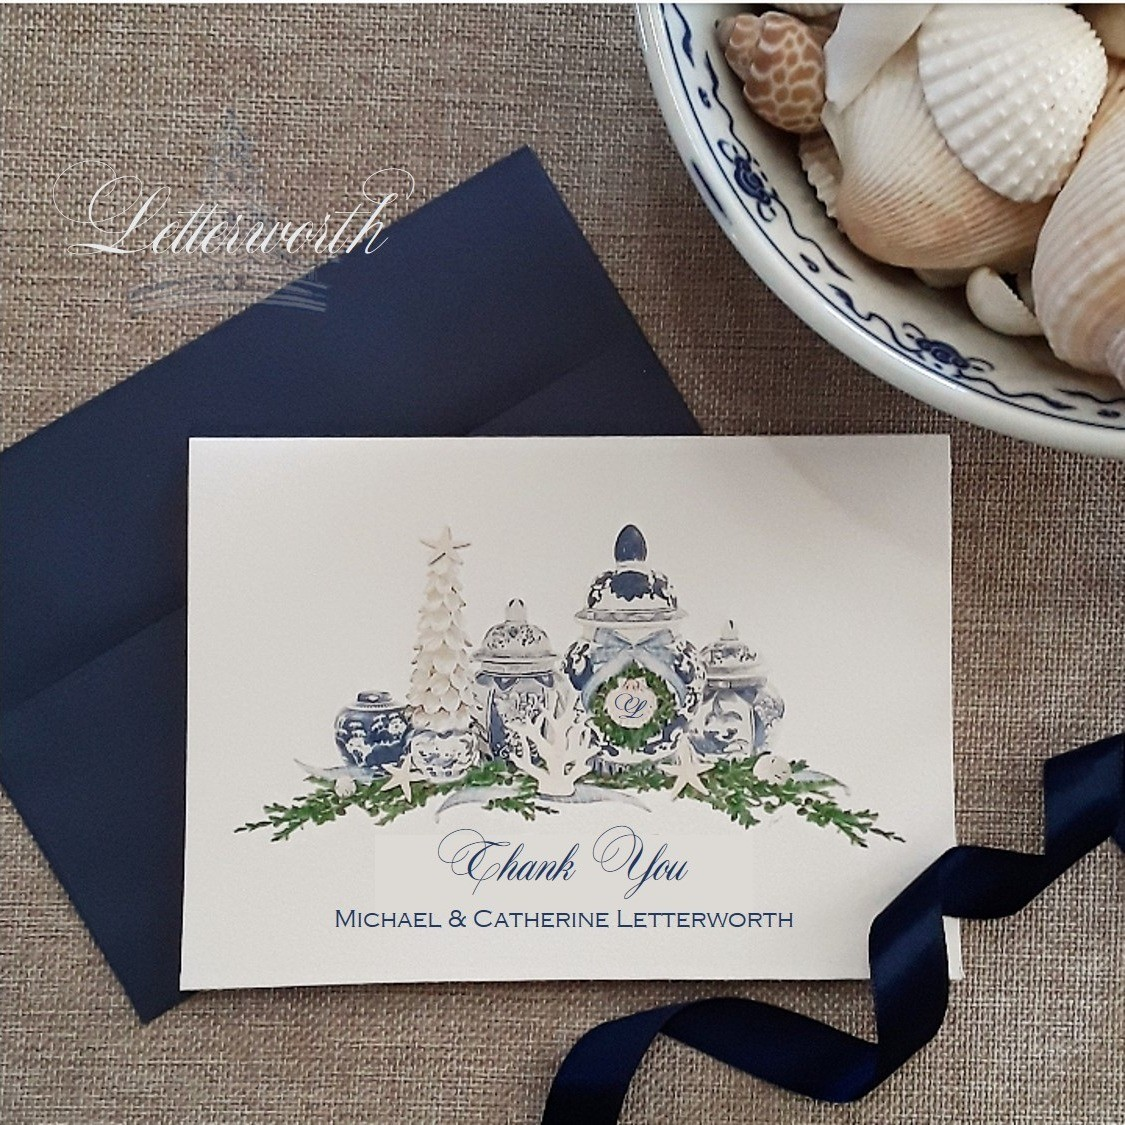 Letterworth Blue and White Coastal Ginger Jar Watercolor Note Cards (Set of 8)